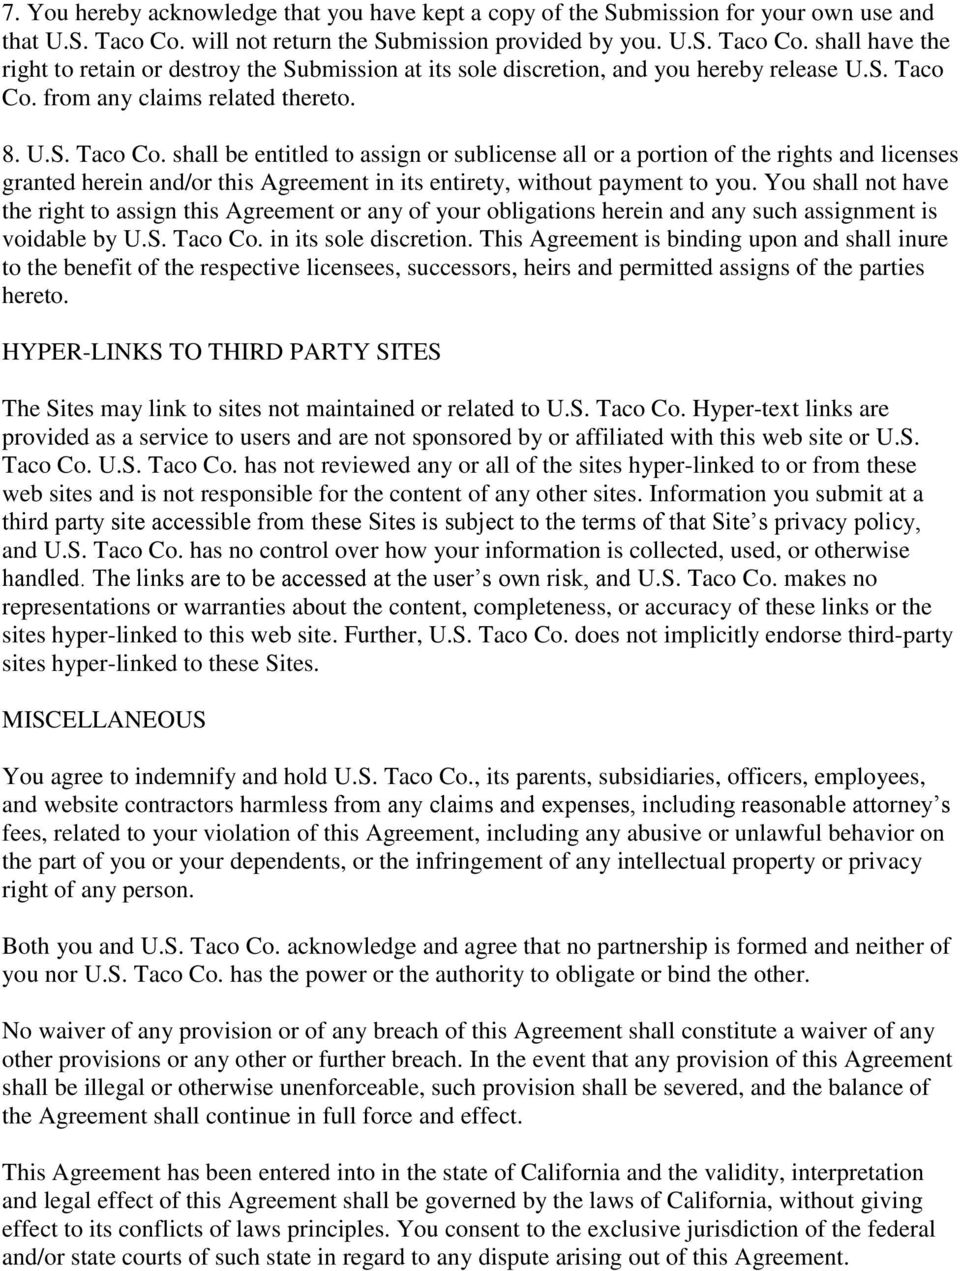 8. U.S. Taco Co. shall be entitled to assign or sublicense all or a portion of the rights and licenses granted herein and/or this Agreement in its entirety, without payment to you.